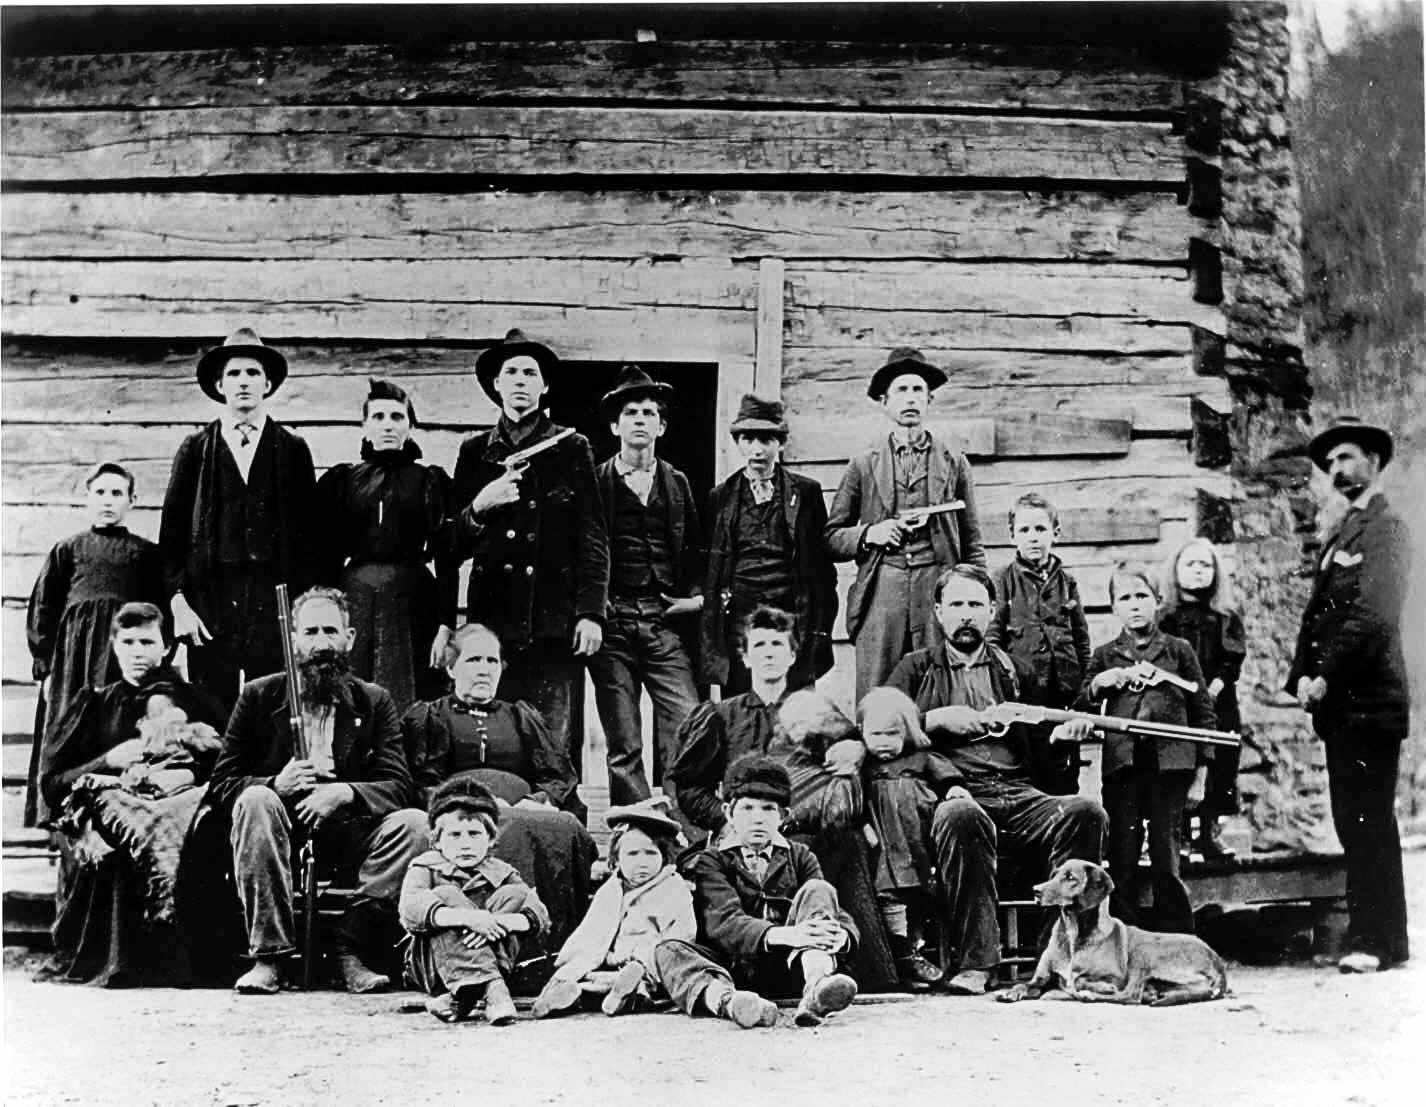 The Hatfield Clan of the Hatfield-McCoy-feud